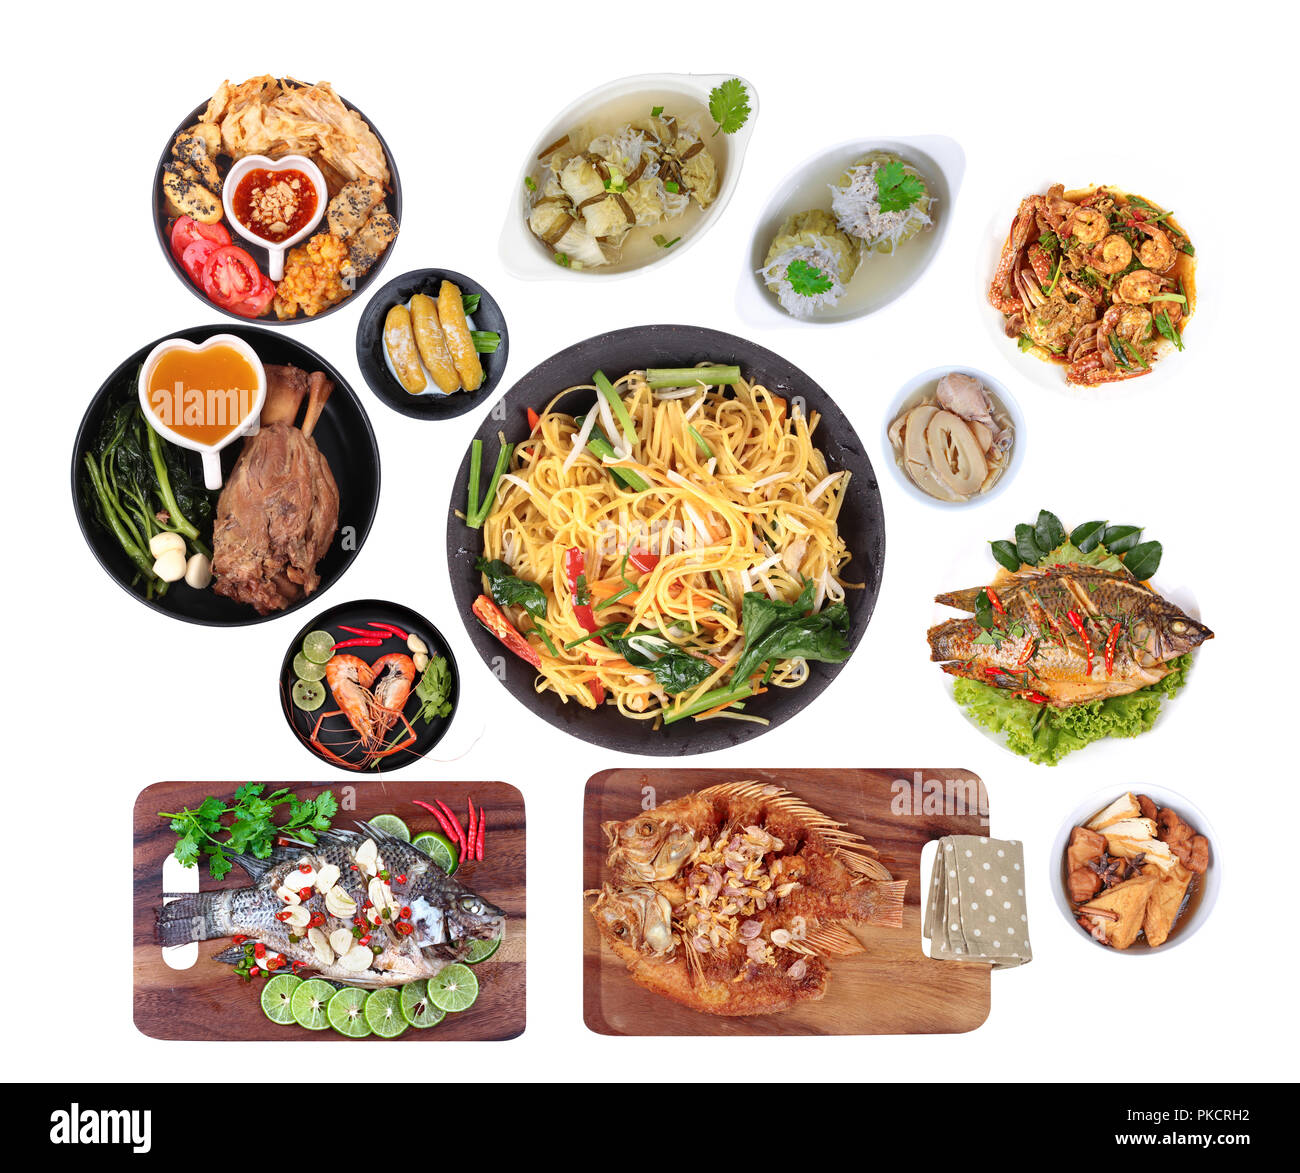 Food To Respect God Of Fortune In Chinese New Year Such As Fish